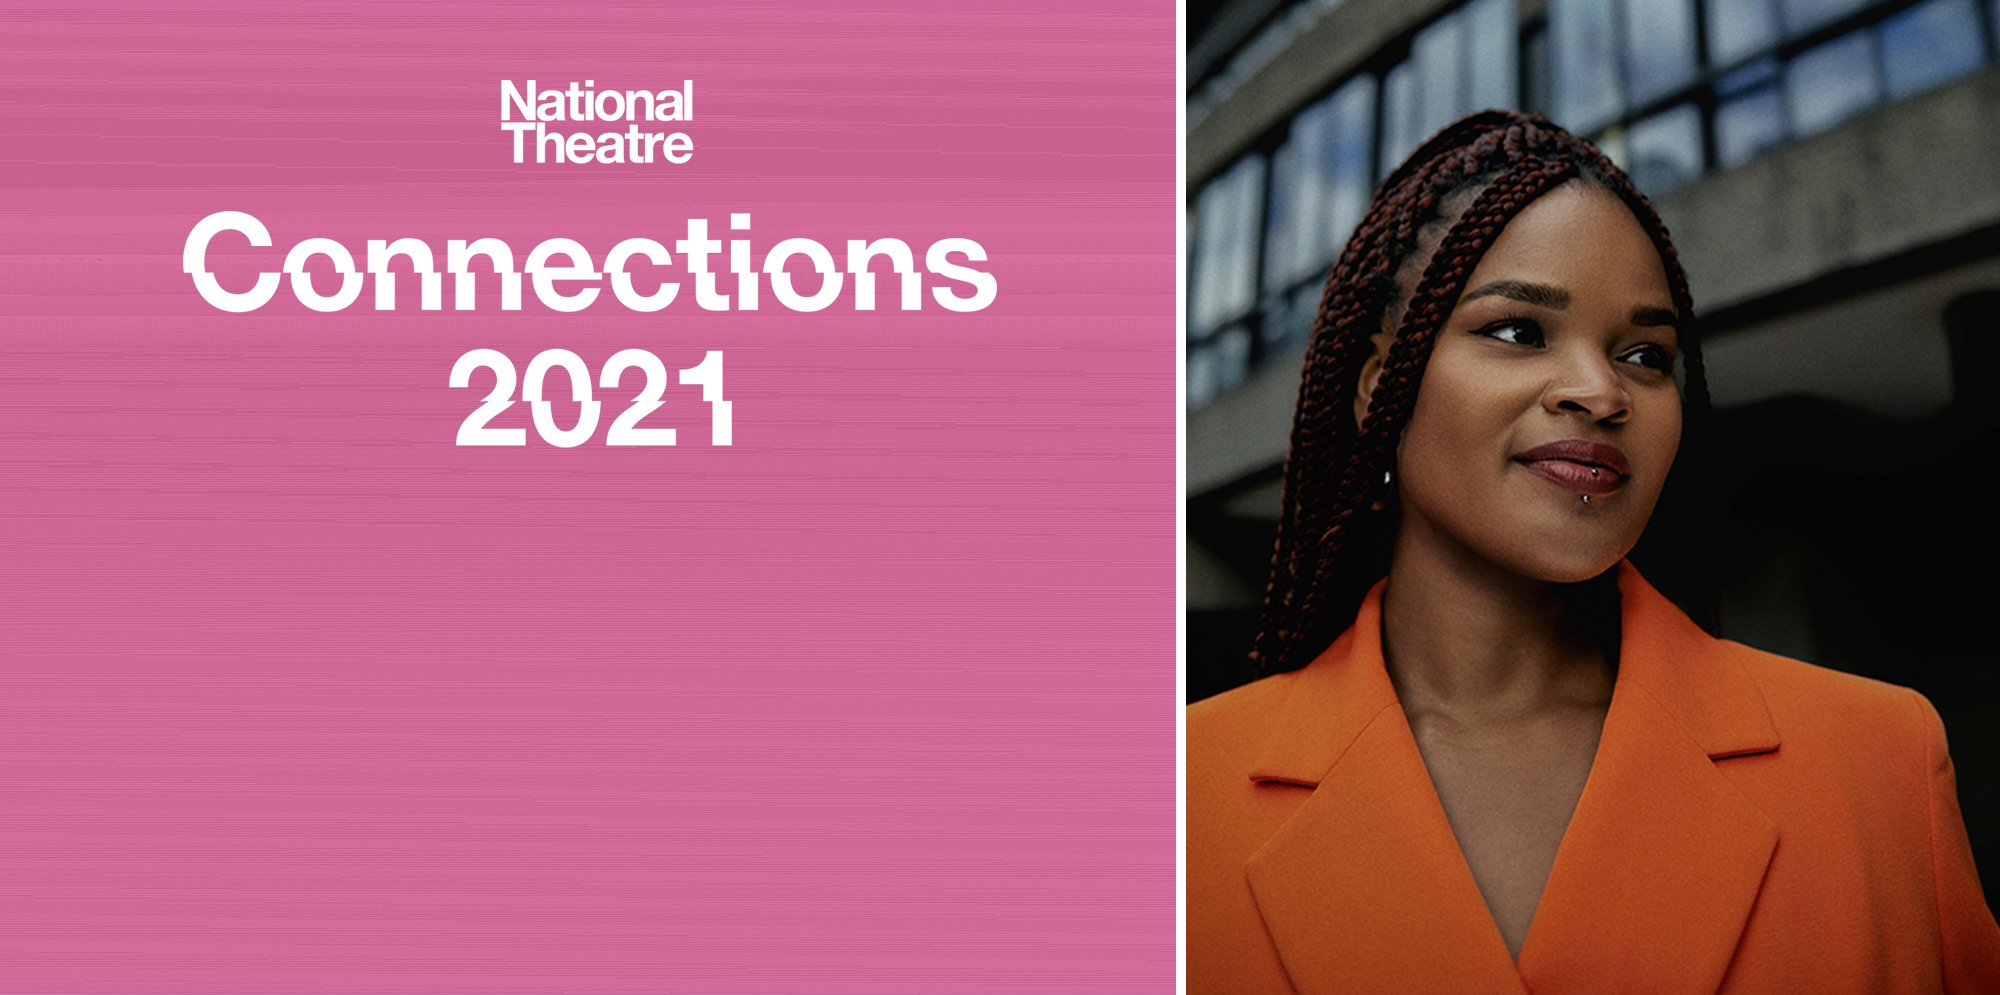 On the left side of the image, a white NT Connections logo is on a pink background. On the right is a picture of Abigail Sewell, a black woman with long dark braided hair. She is wearing an orange blazer jacket and is smiling. She is pictured outdoors.